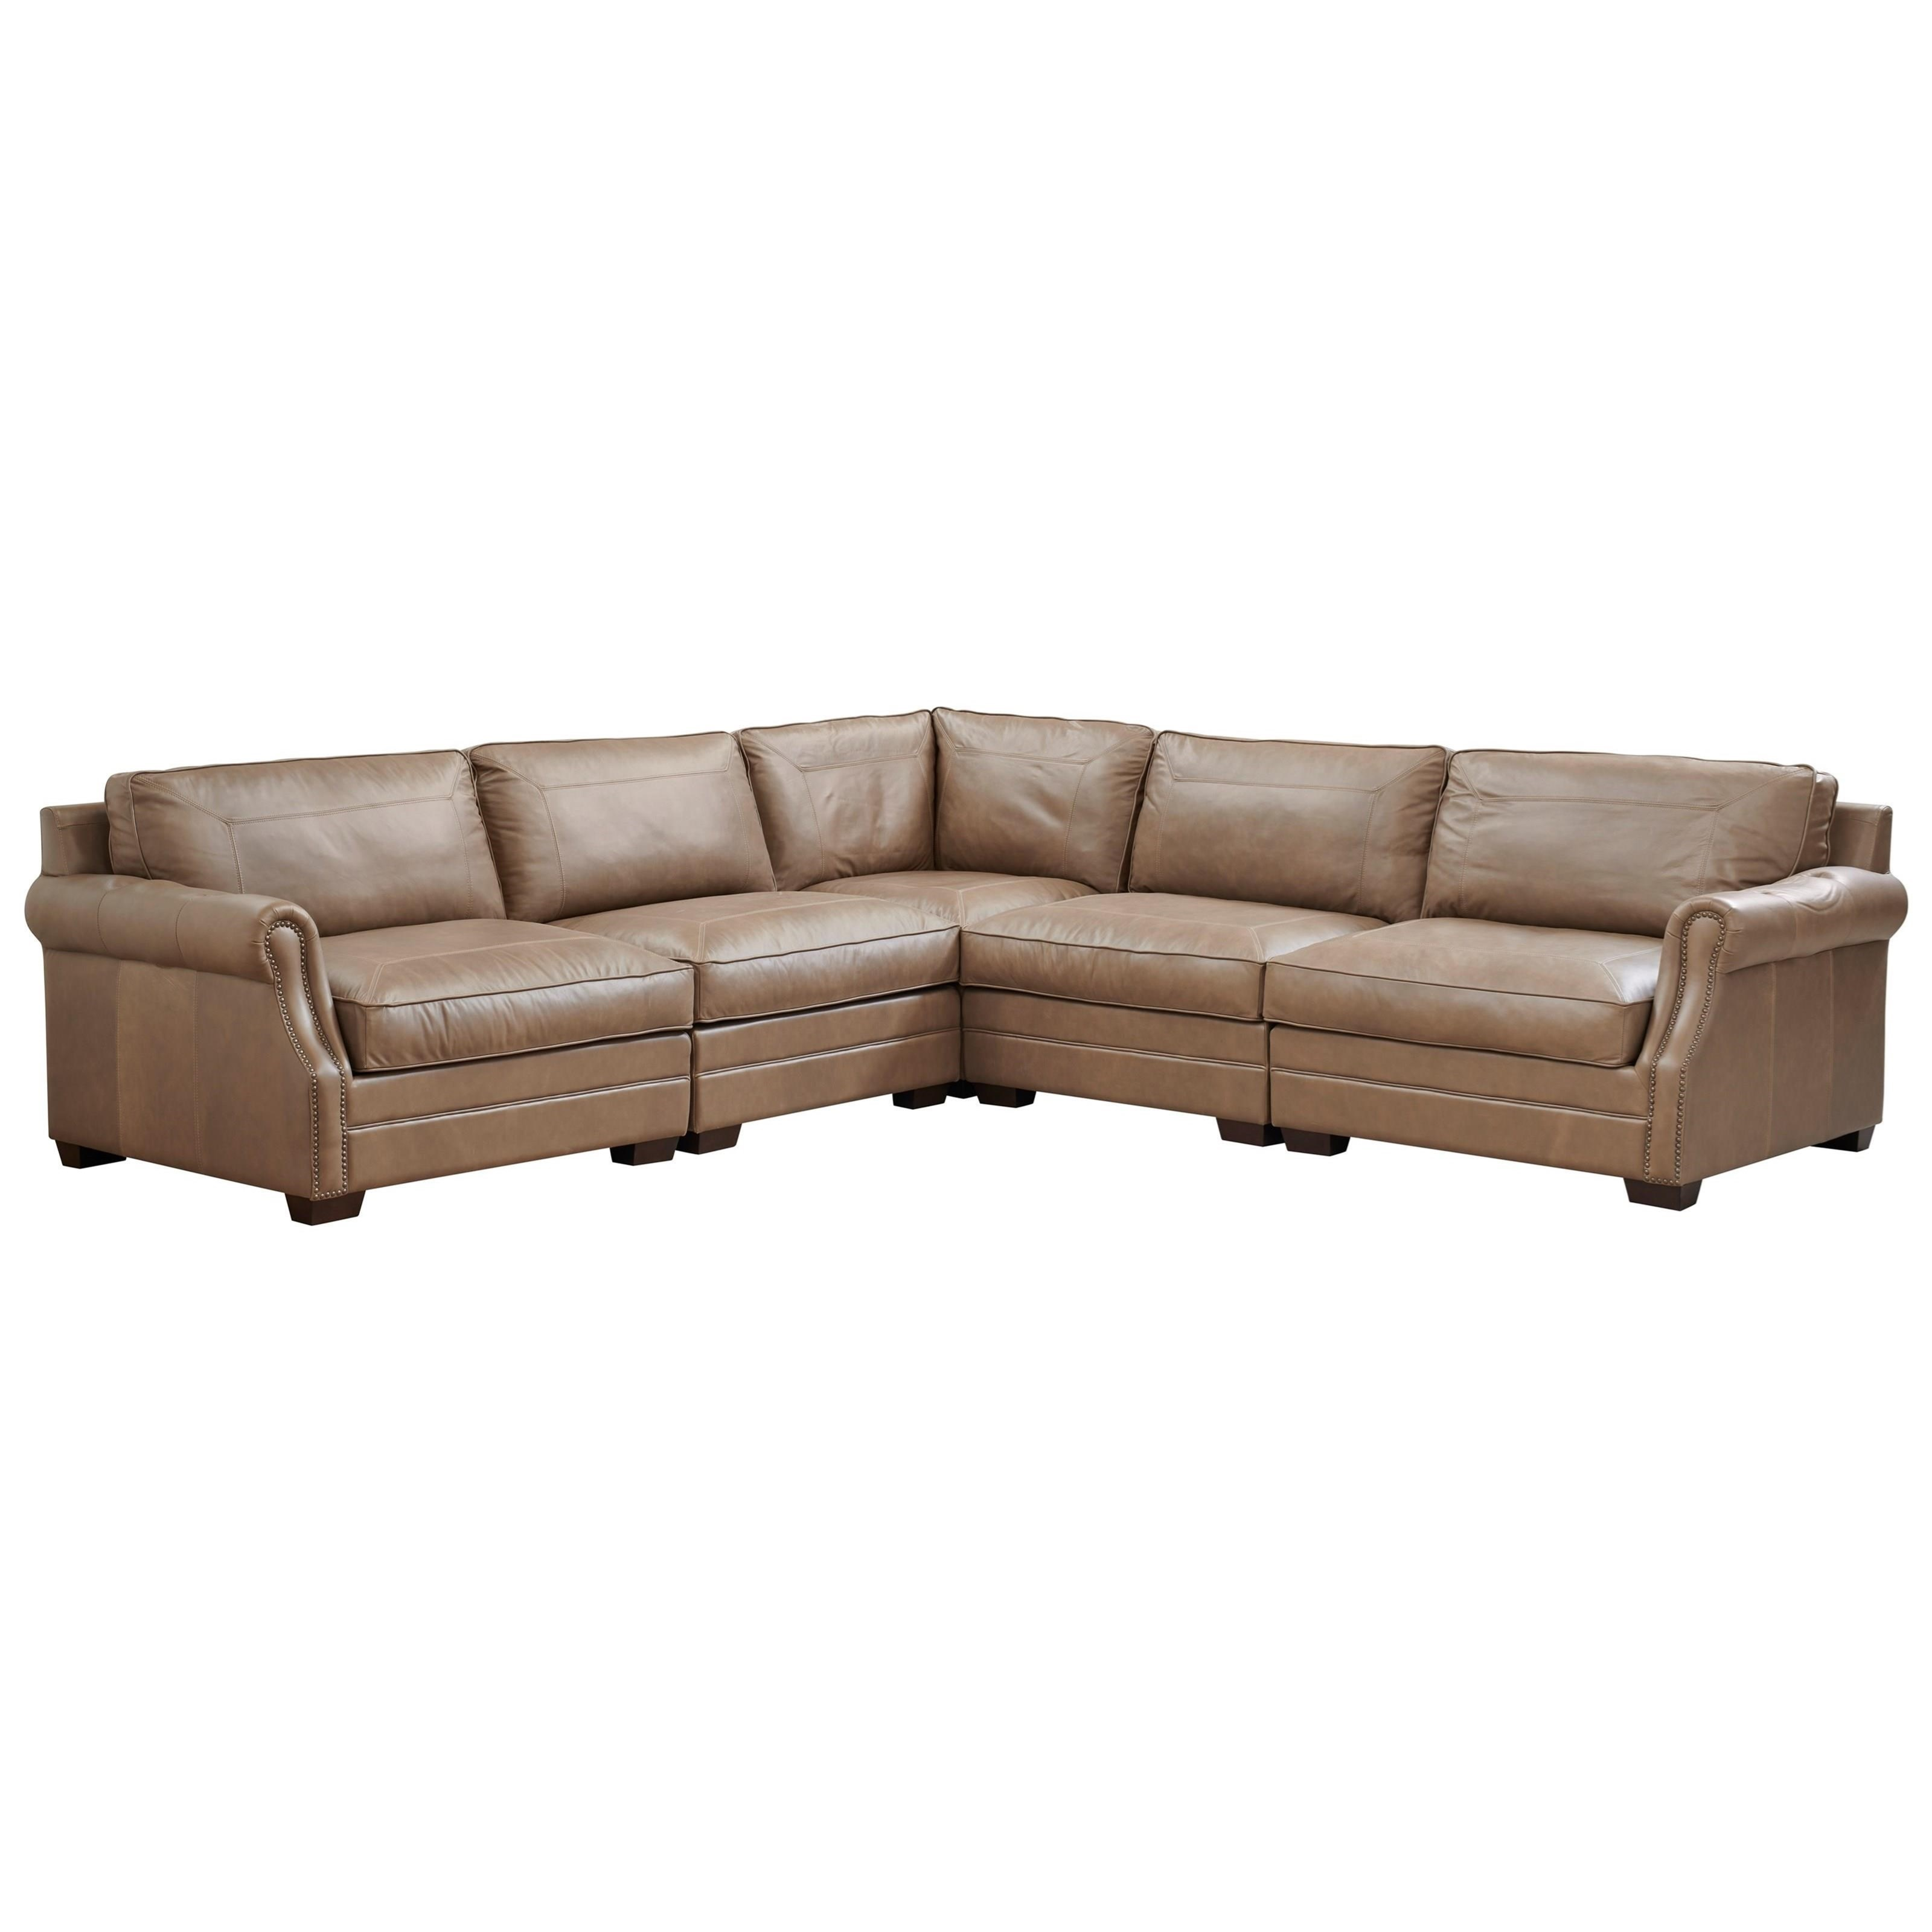 Leather Carrington Sectional by Universal at Baer's Furniture